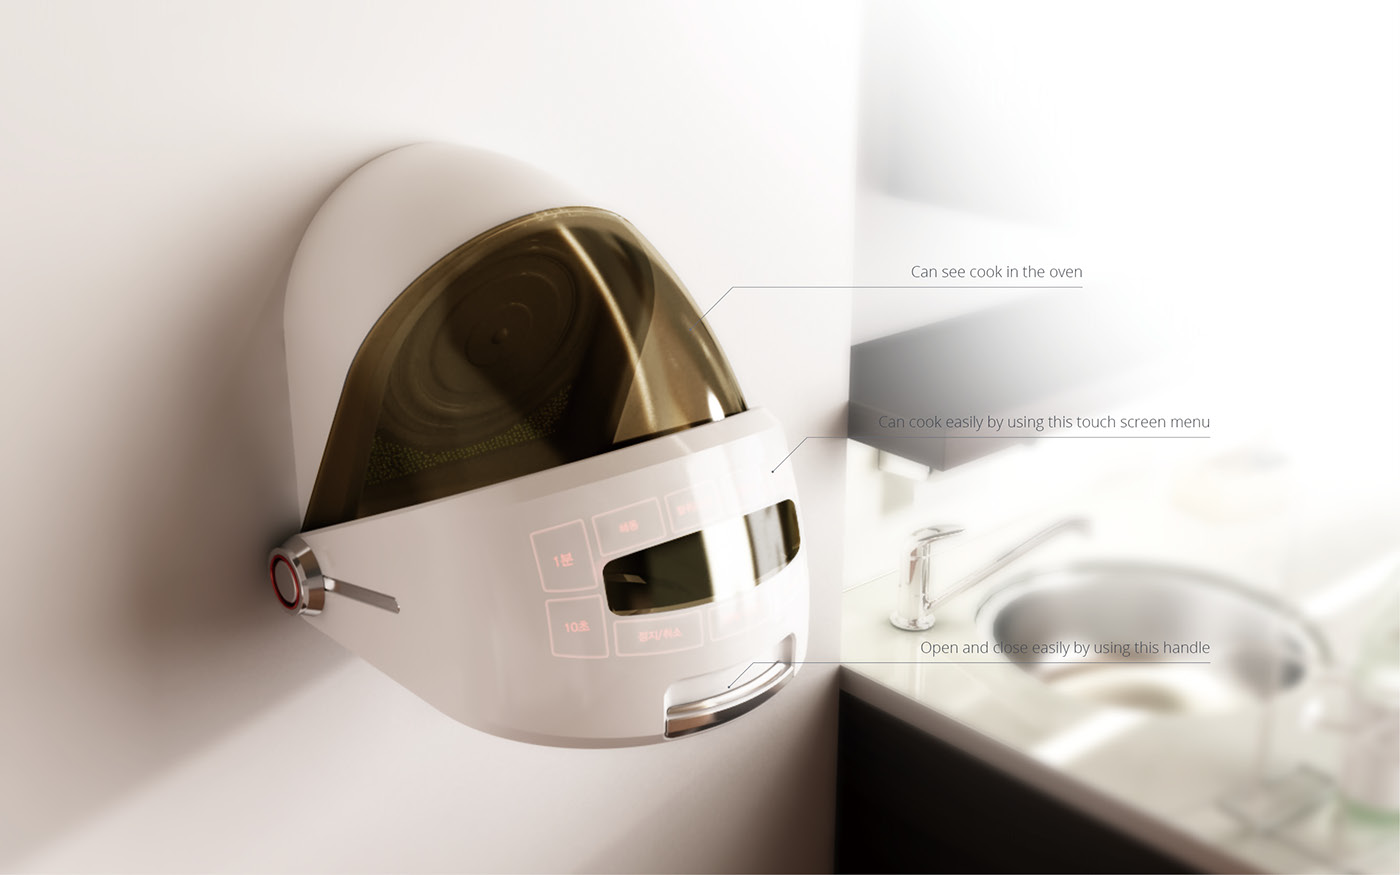 product industrial concept design microwave oven kitchen Culinary if reddot